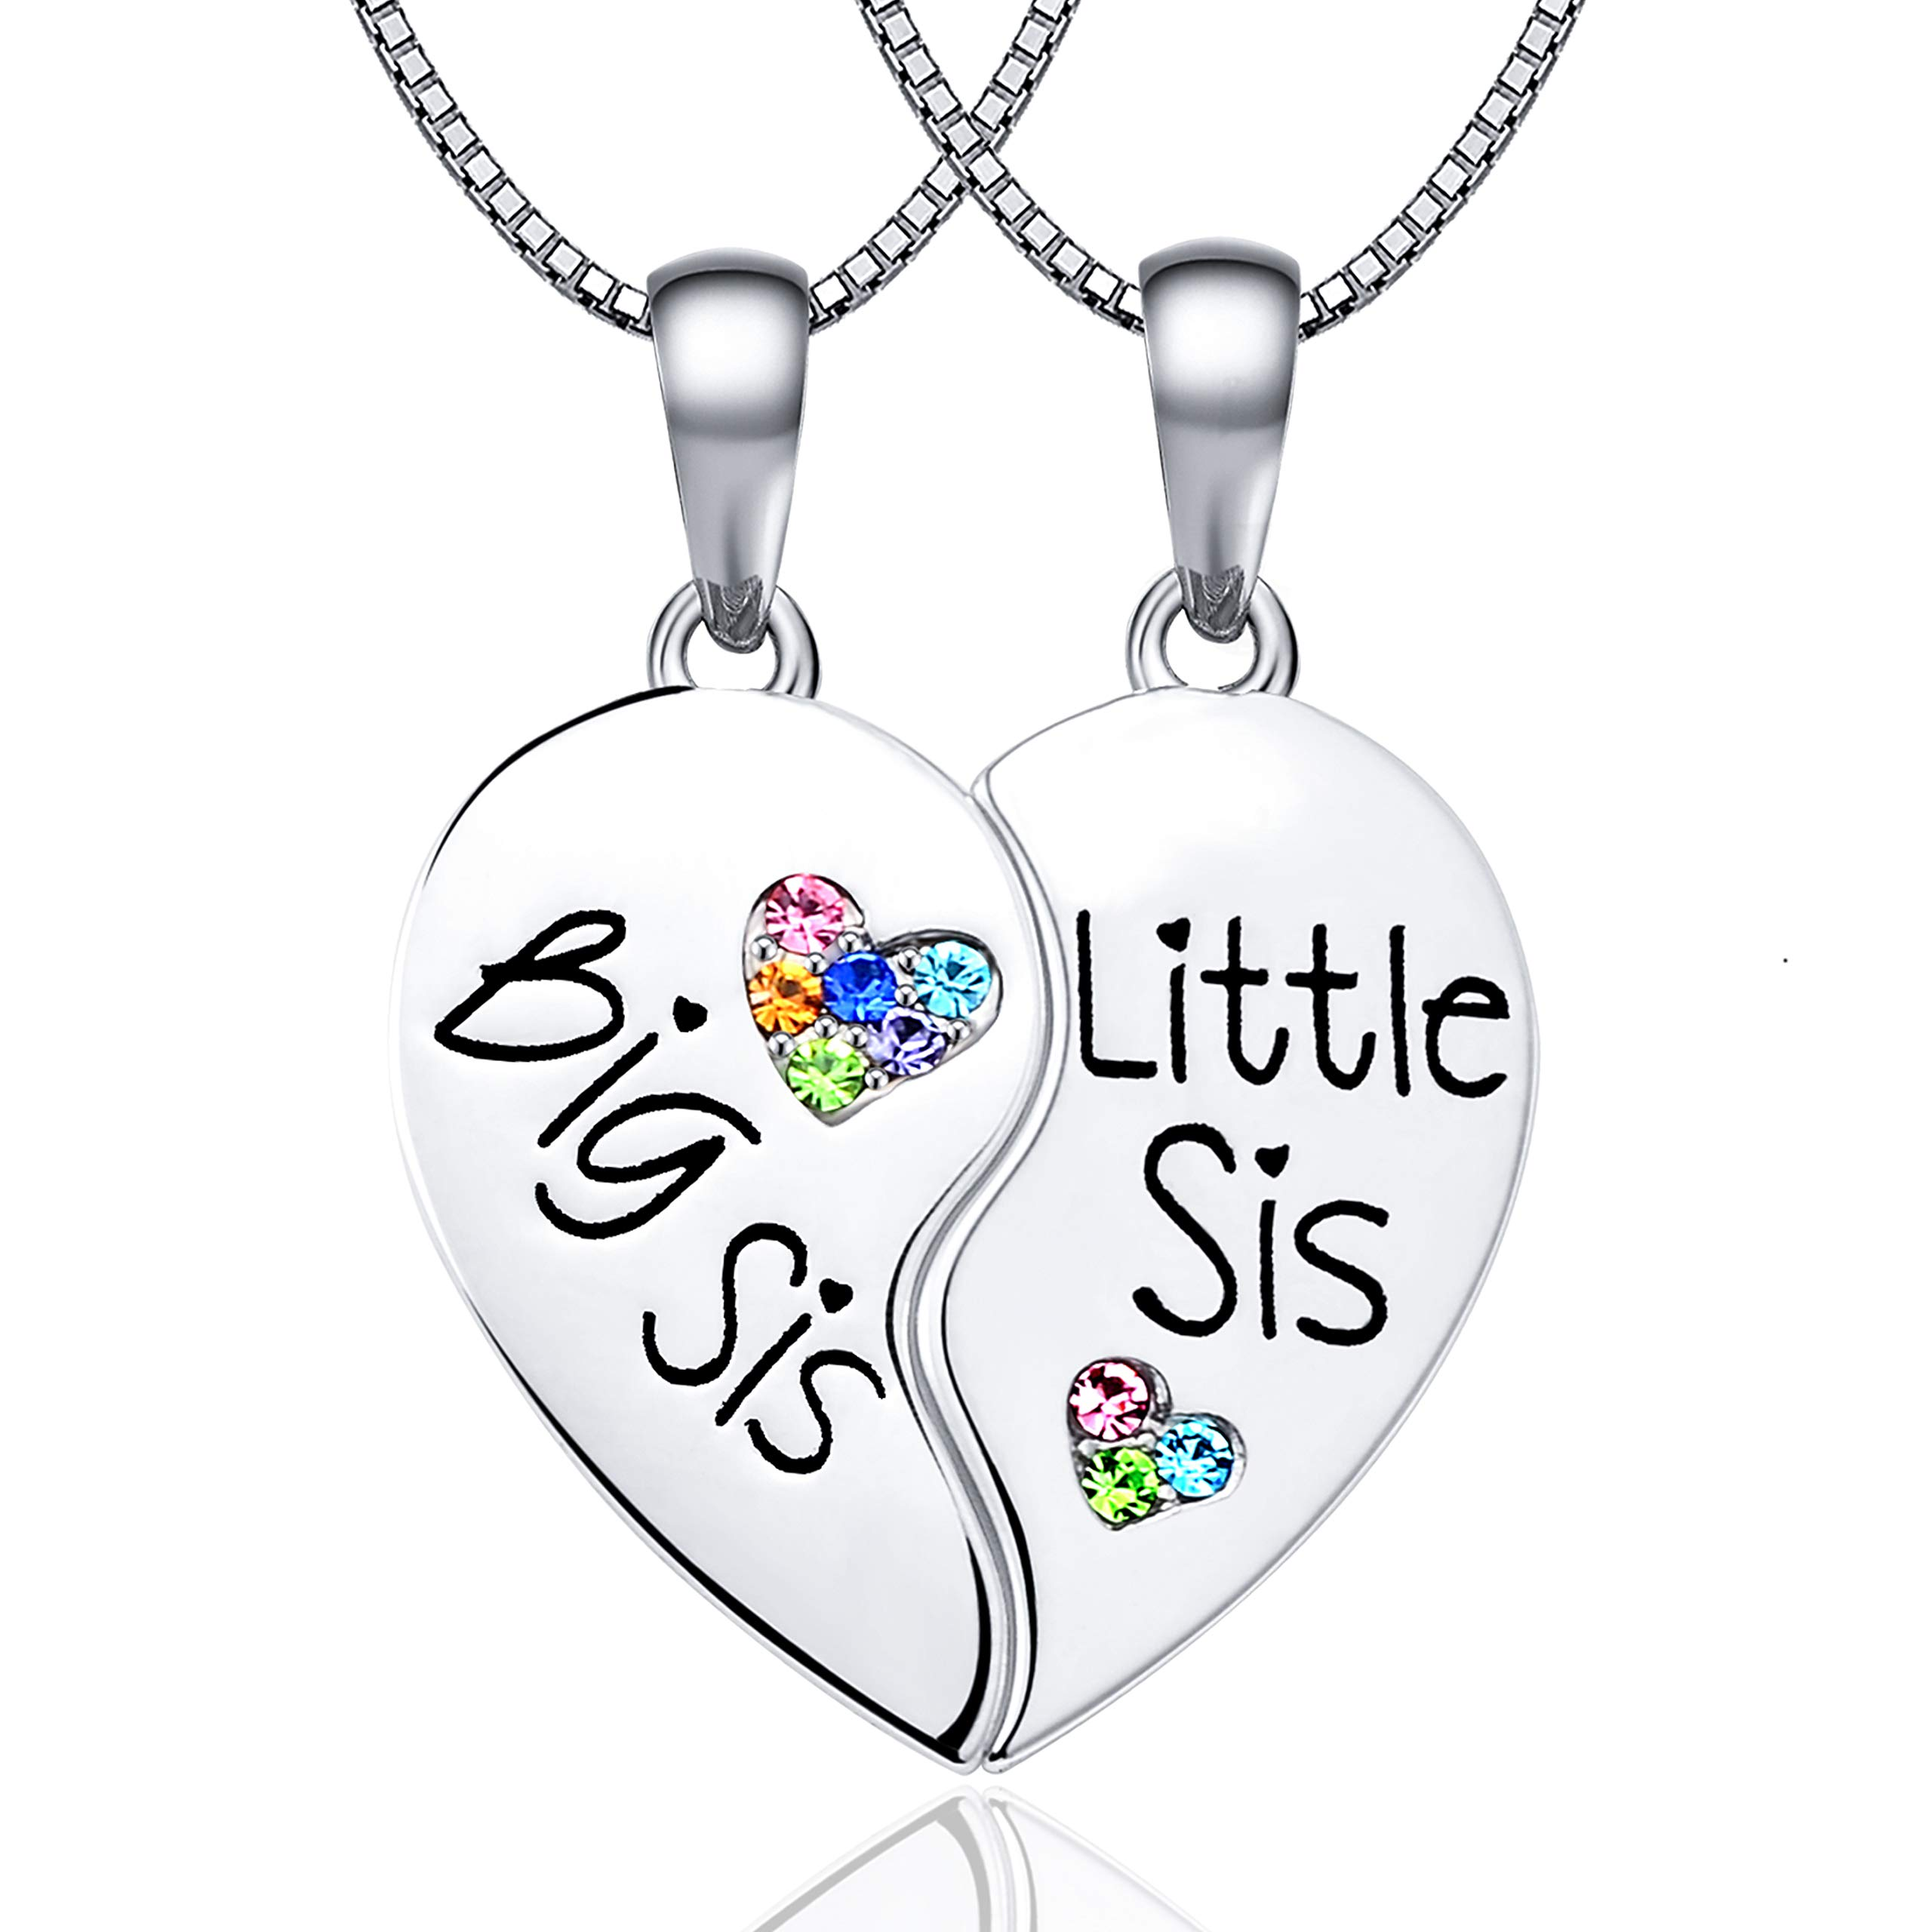 KINGSIN Sisters Necklaces for 2 Big Sis Little Lil Sis Pendant Enhancer Twin Sorority Heart Halves Matching BFF Best Friend